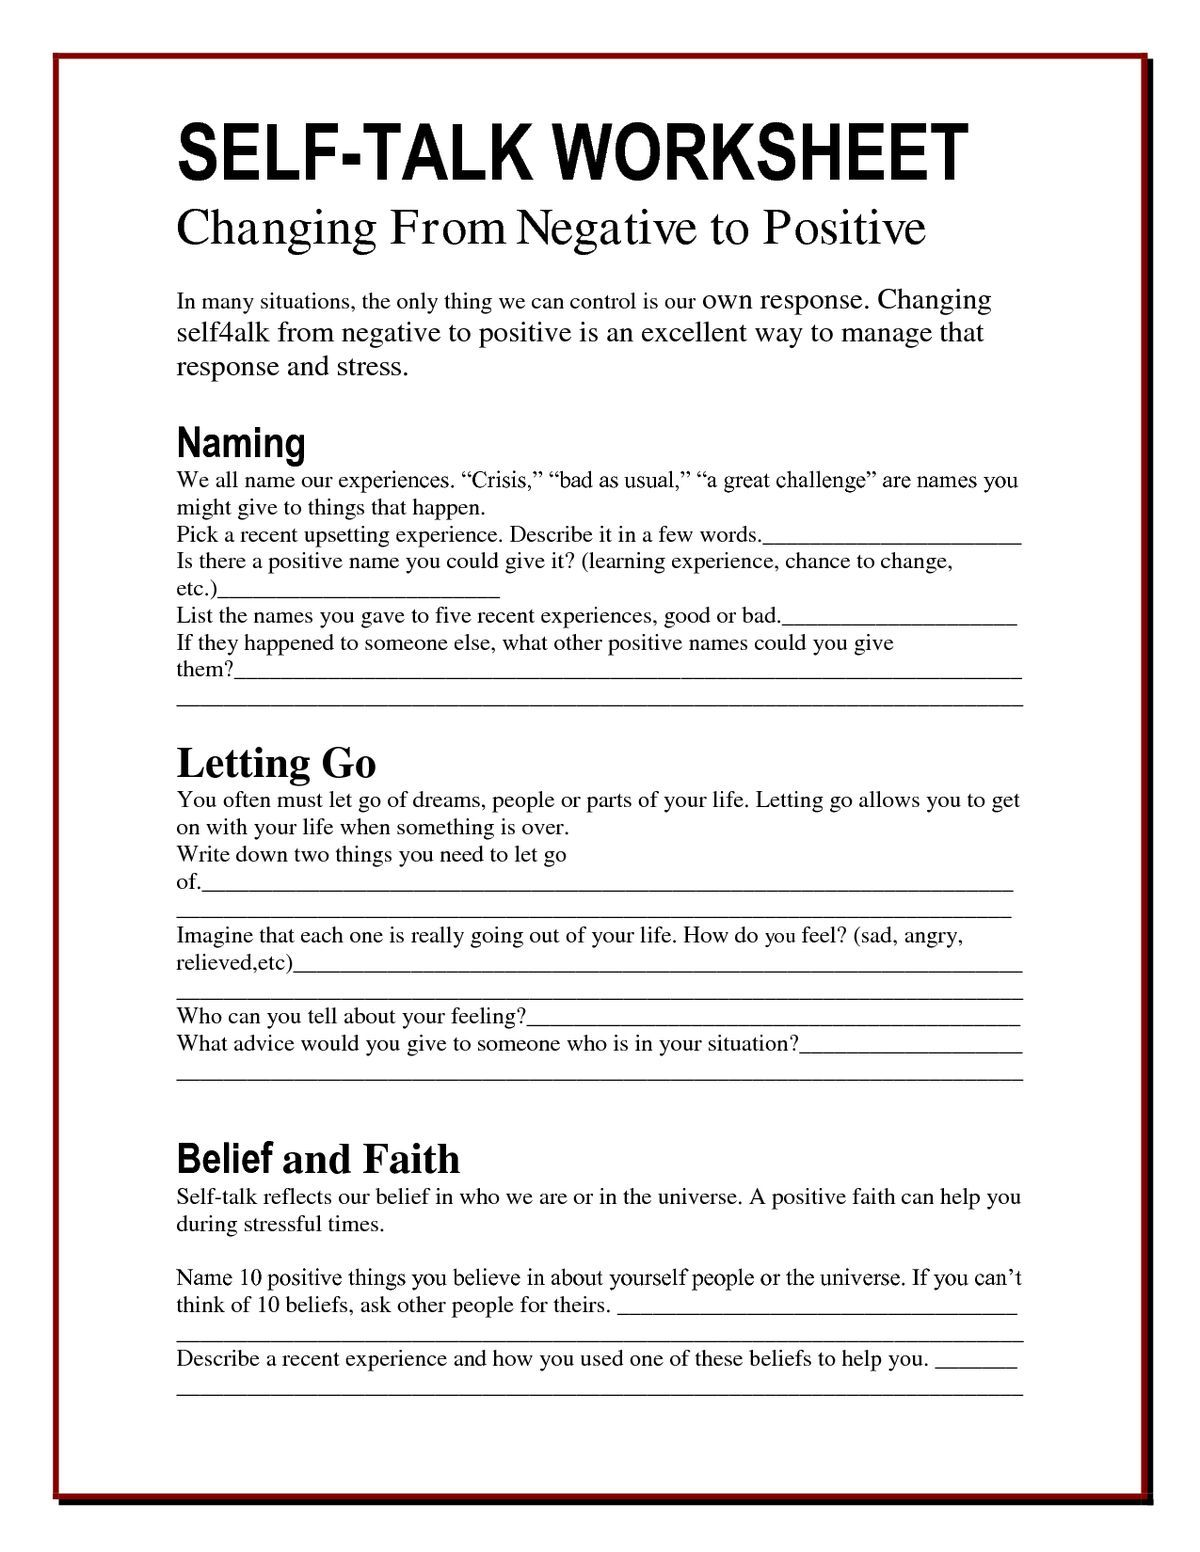 Worksheets Low Self Esteem Worksheets anger worksheets google search positive thinking pinterest the worry bag self talk worksheet archives healing path with childrenteens